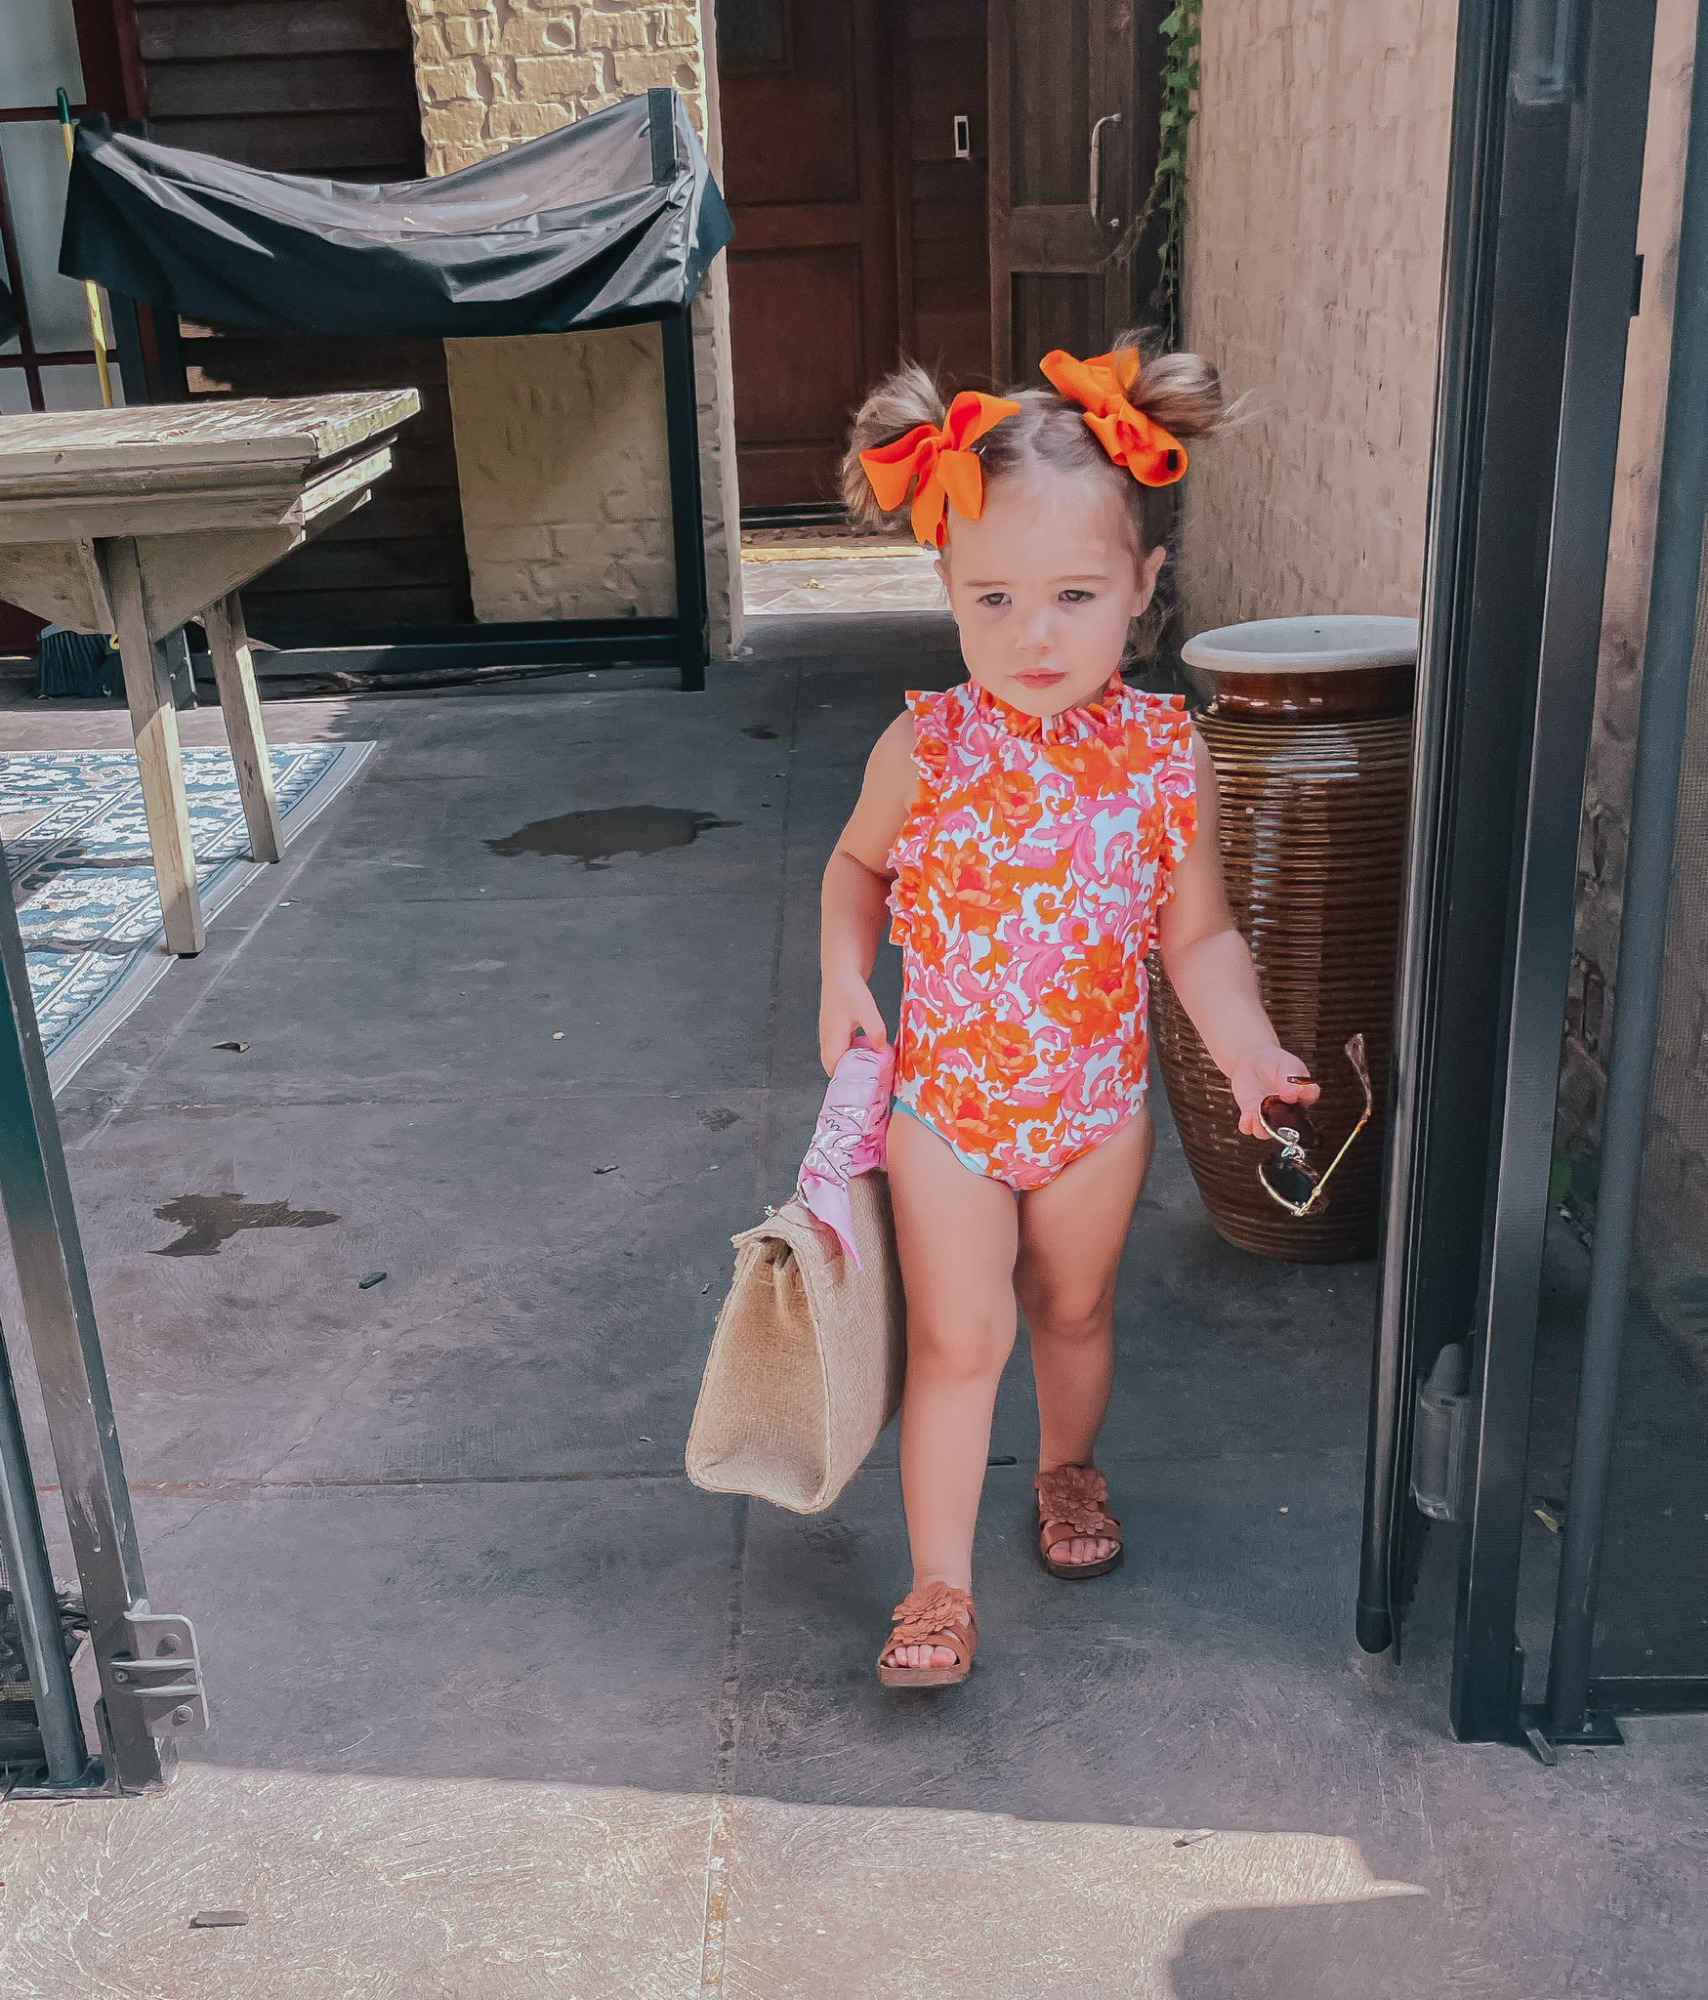 Sophia Gemma, Toddler Swimsuit, Toddler Bows, Swimwear for little girls, Kids Sunglasses, Baby Girl Summer Outfit Ideas   Instagram Recap by popular US life and style blog, The Sweetest Thing: image of Sophie wearing a Janie and Jack swimsuit, Zara sandals, orange hair bows and holding a woven handbag from Etsy.